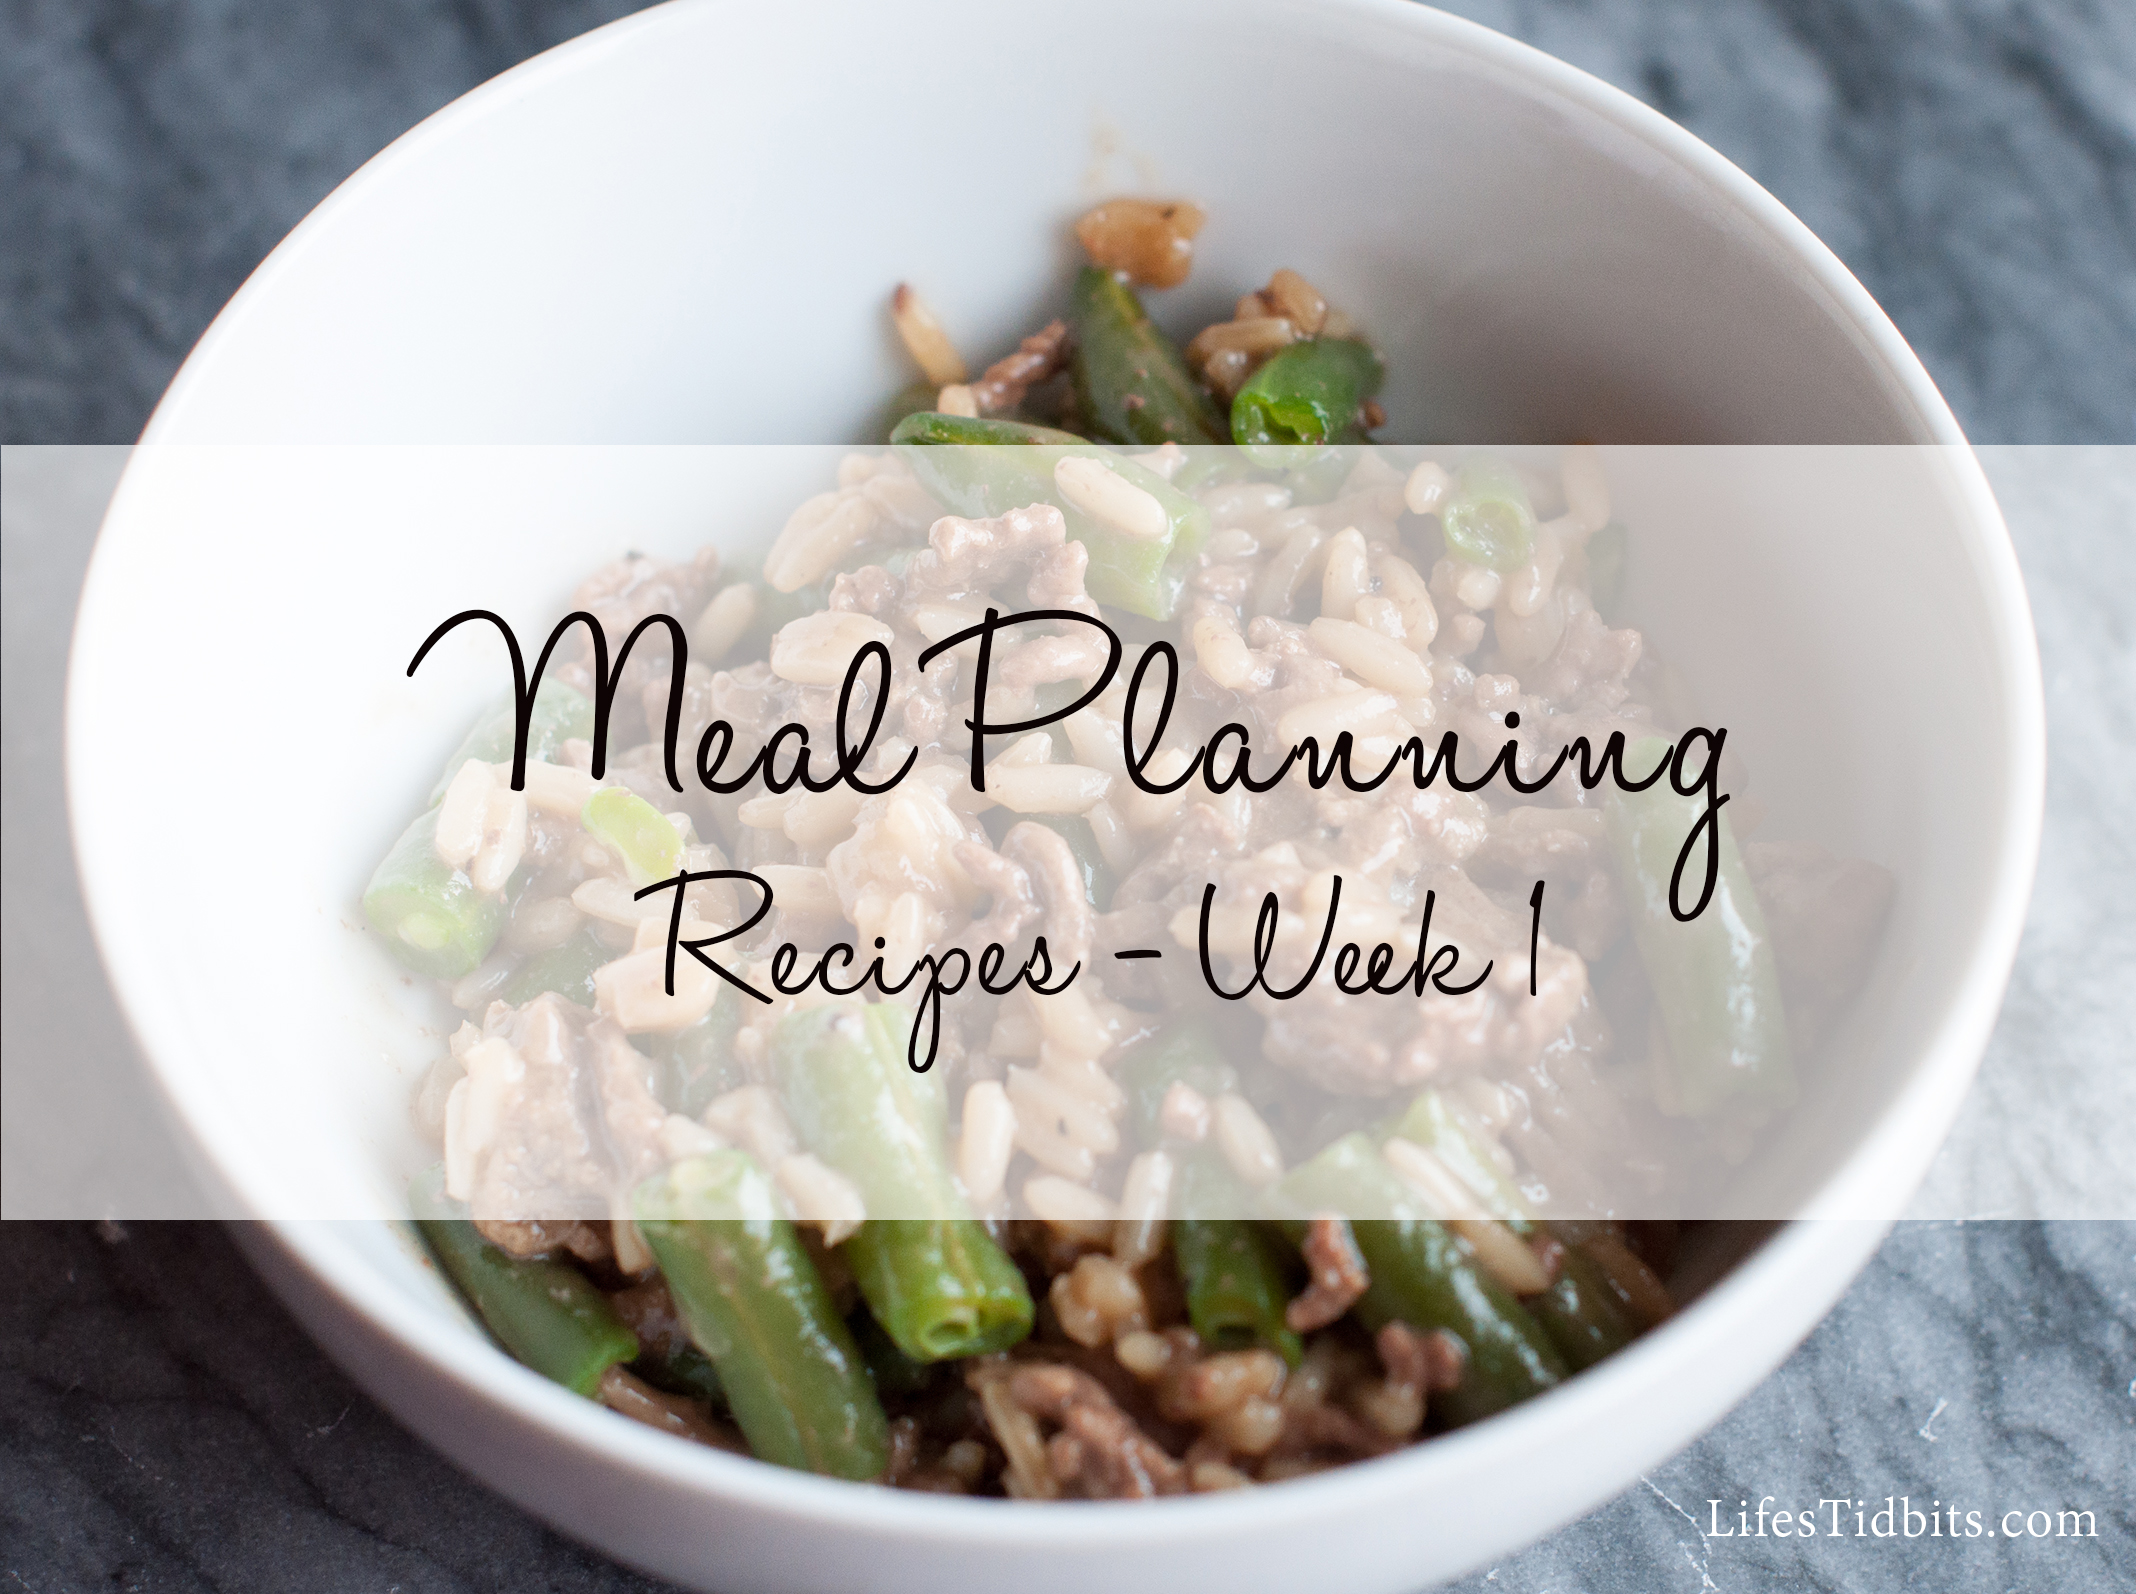 Meal Planning Dinner Recipes - Week 1 | Life's Tidbits